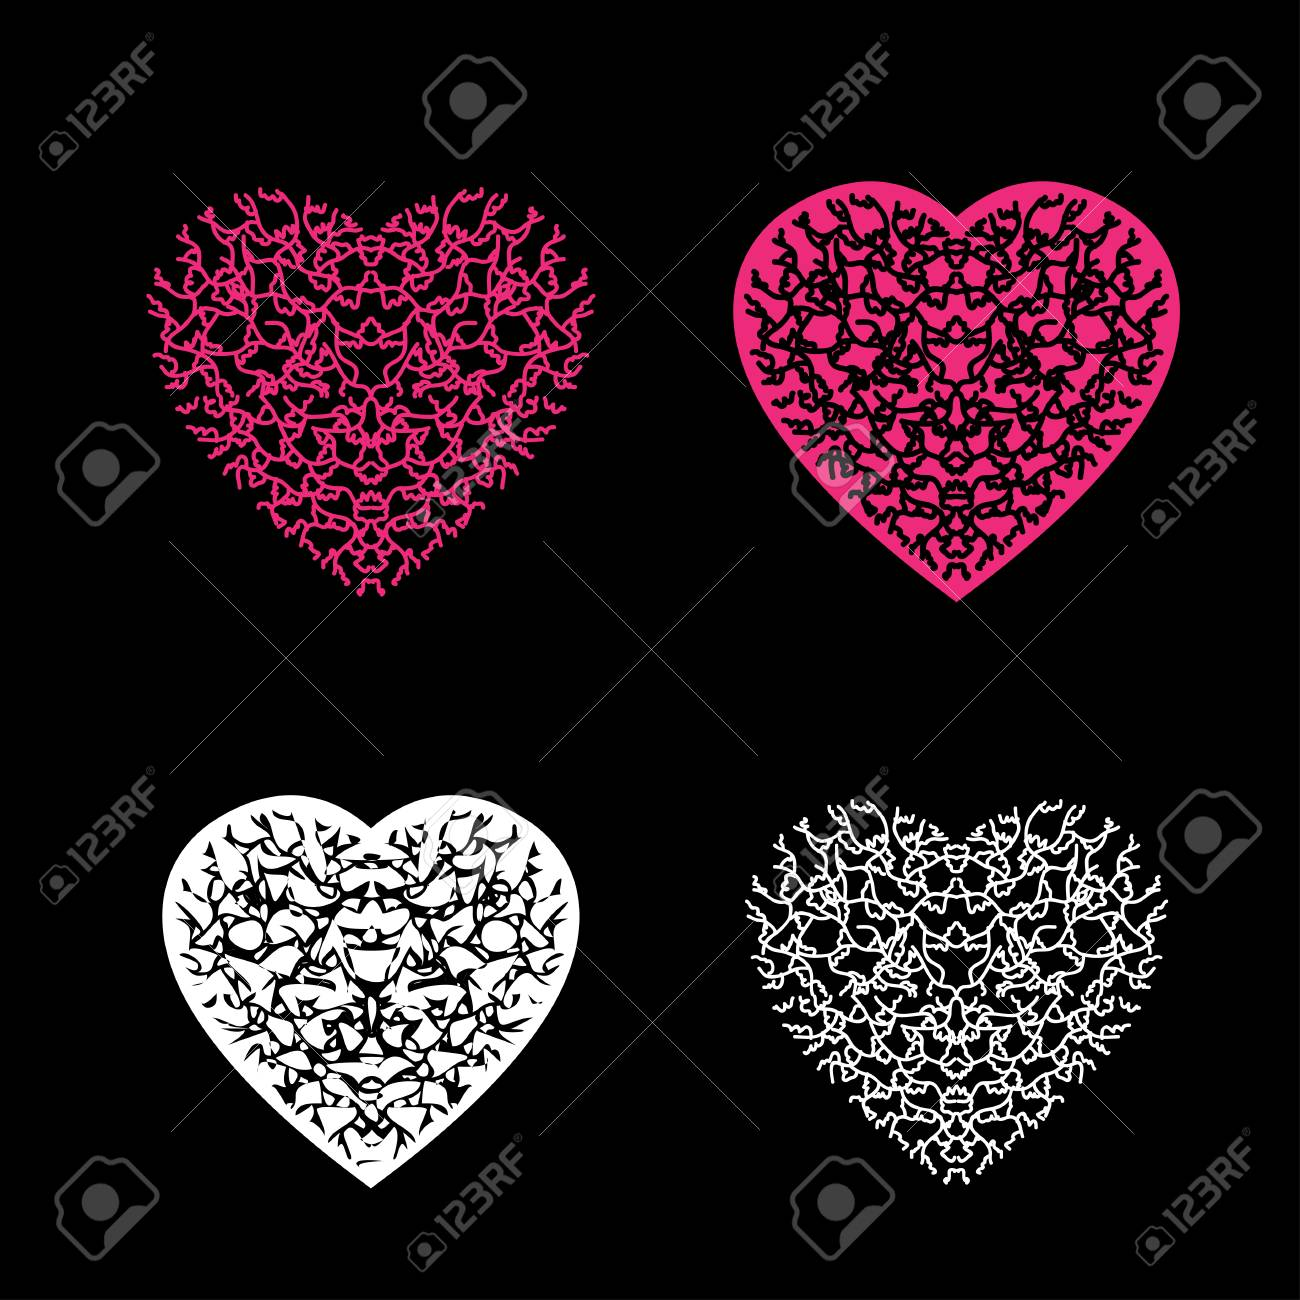 Multi Colour Heart With Pattern On Black Background Royalty Free Cliparts Vectors And Stock Illustration Image 98480032